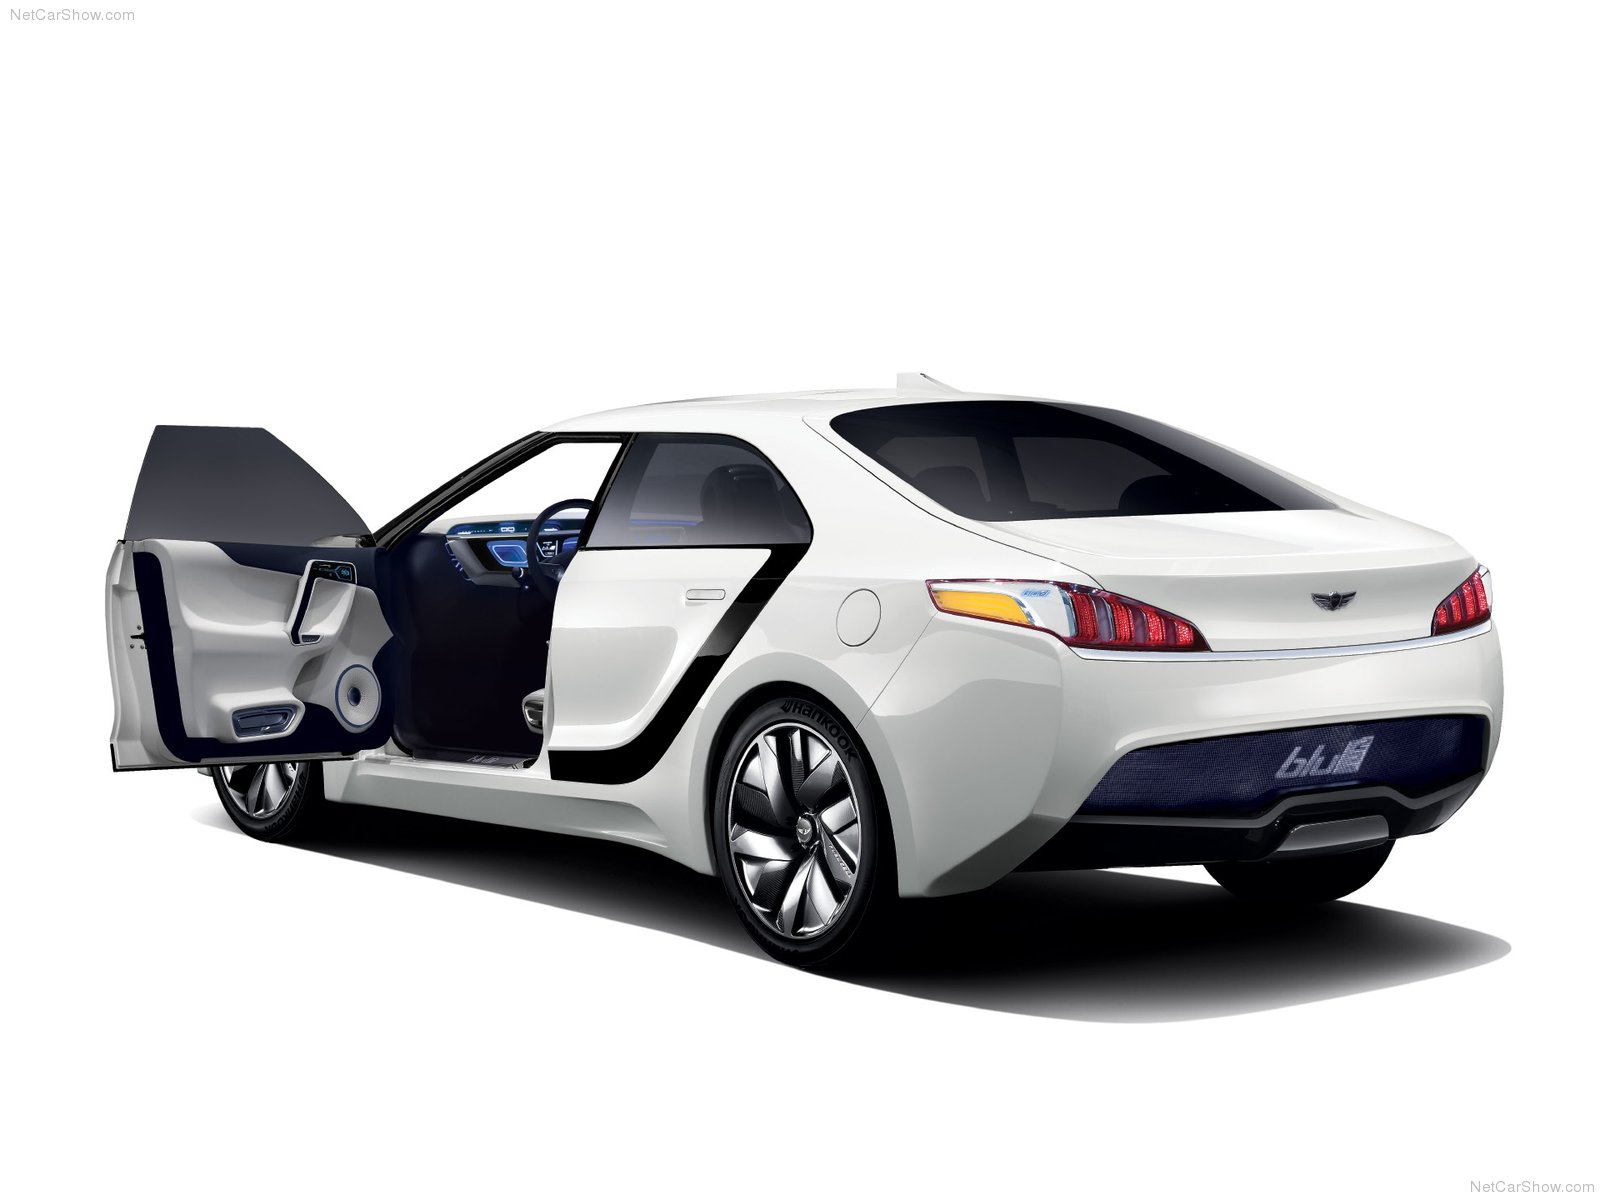 Hyundai Blue2 Concept photo 79460